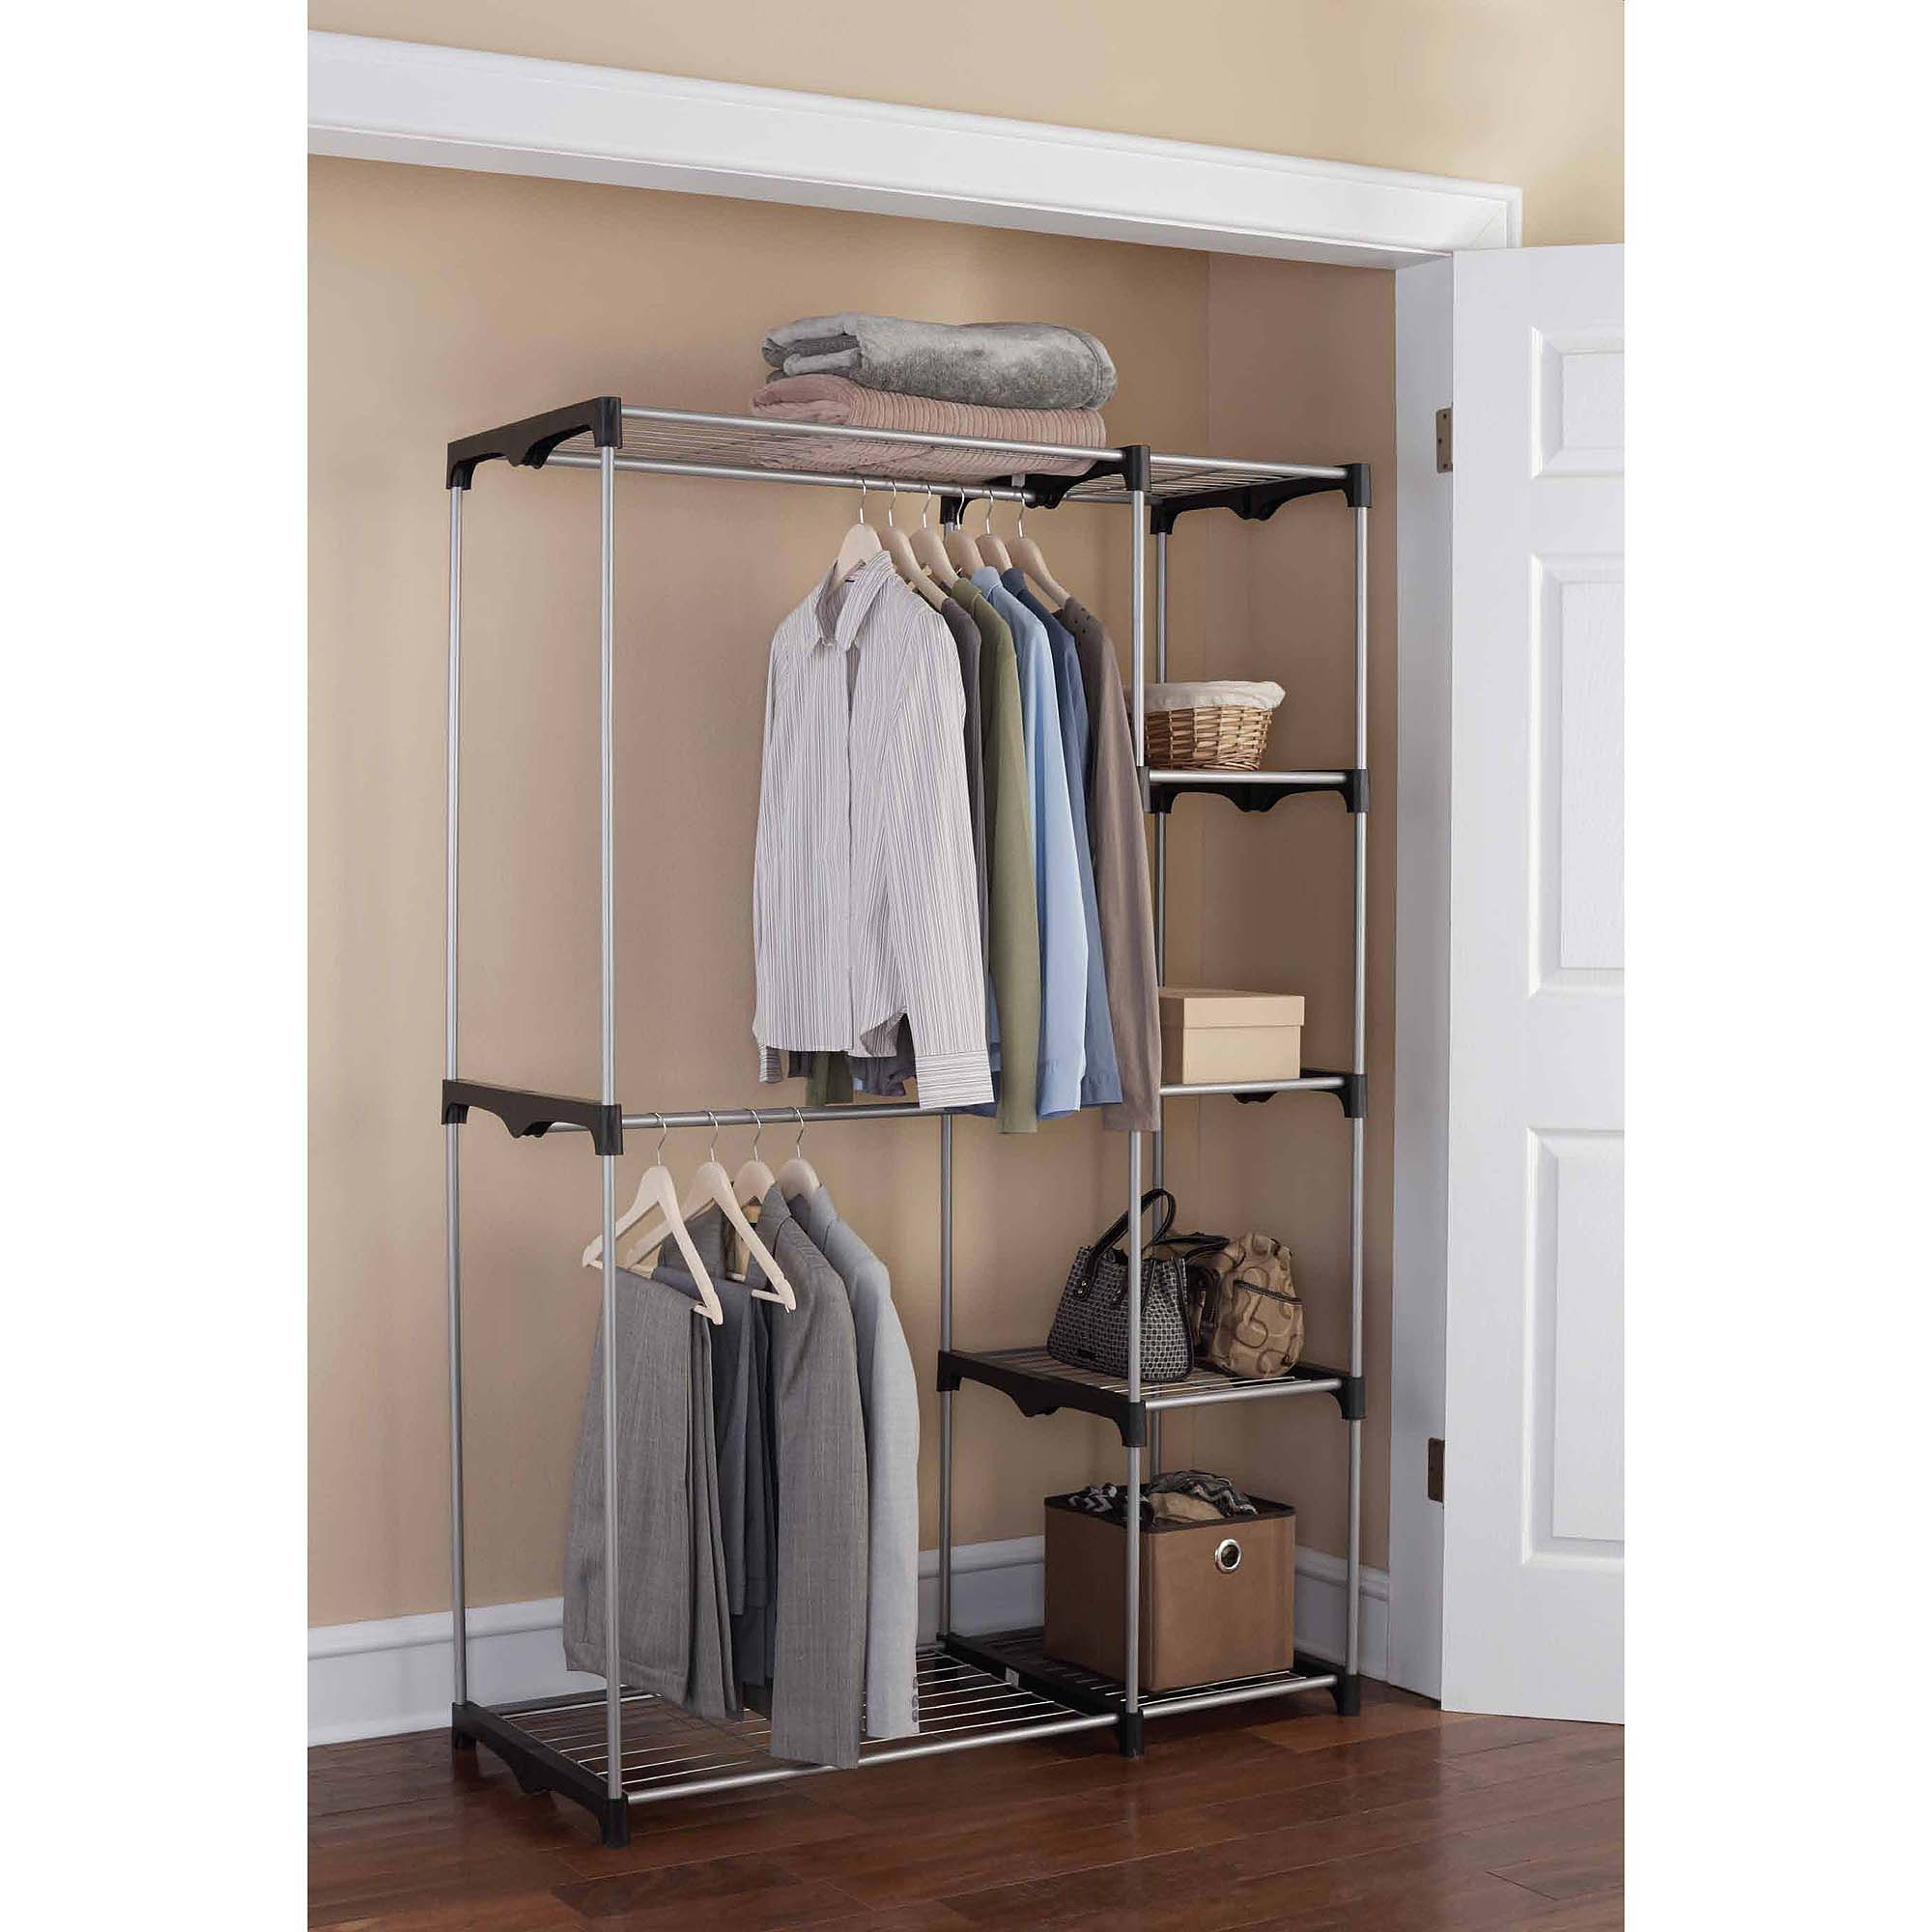 Styles Walmart Closet Organizers For Your Bedroom Space Saving For Hanging Wardrobe Shelves (Image 20 of 25)